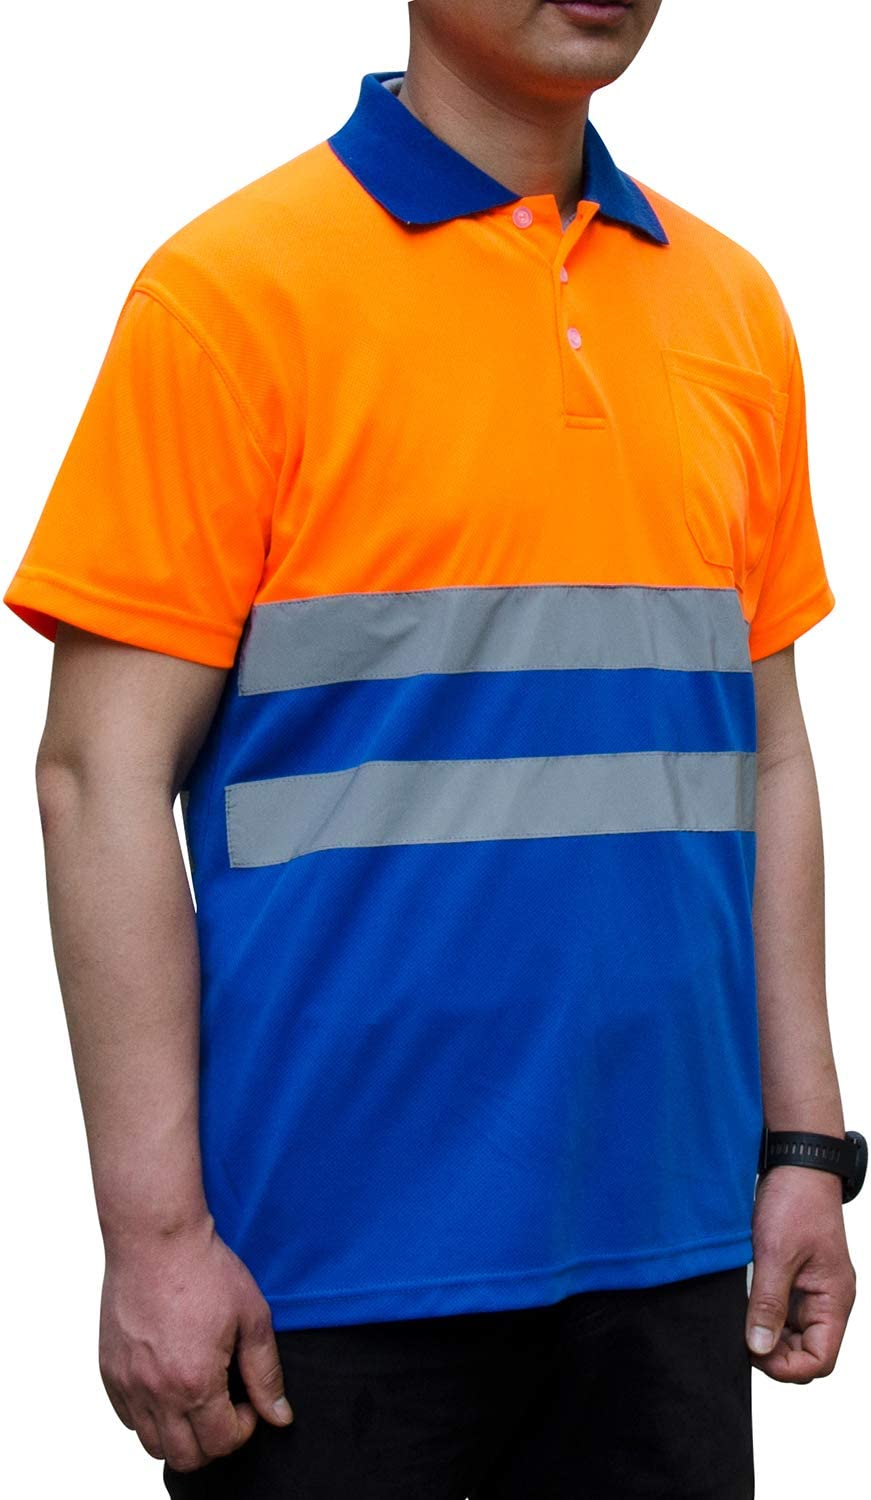 Safety shirt Hi-vis Orange Construction workwear,Bright Security shirts for men,reflective shirt.